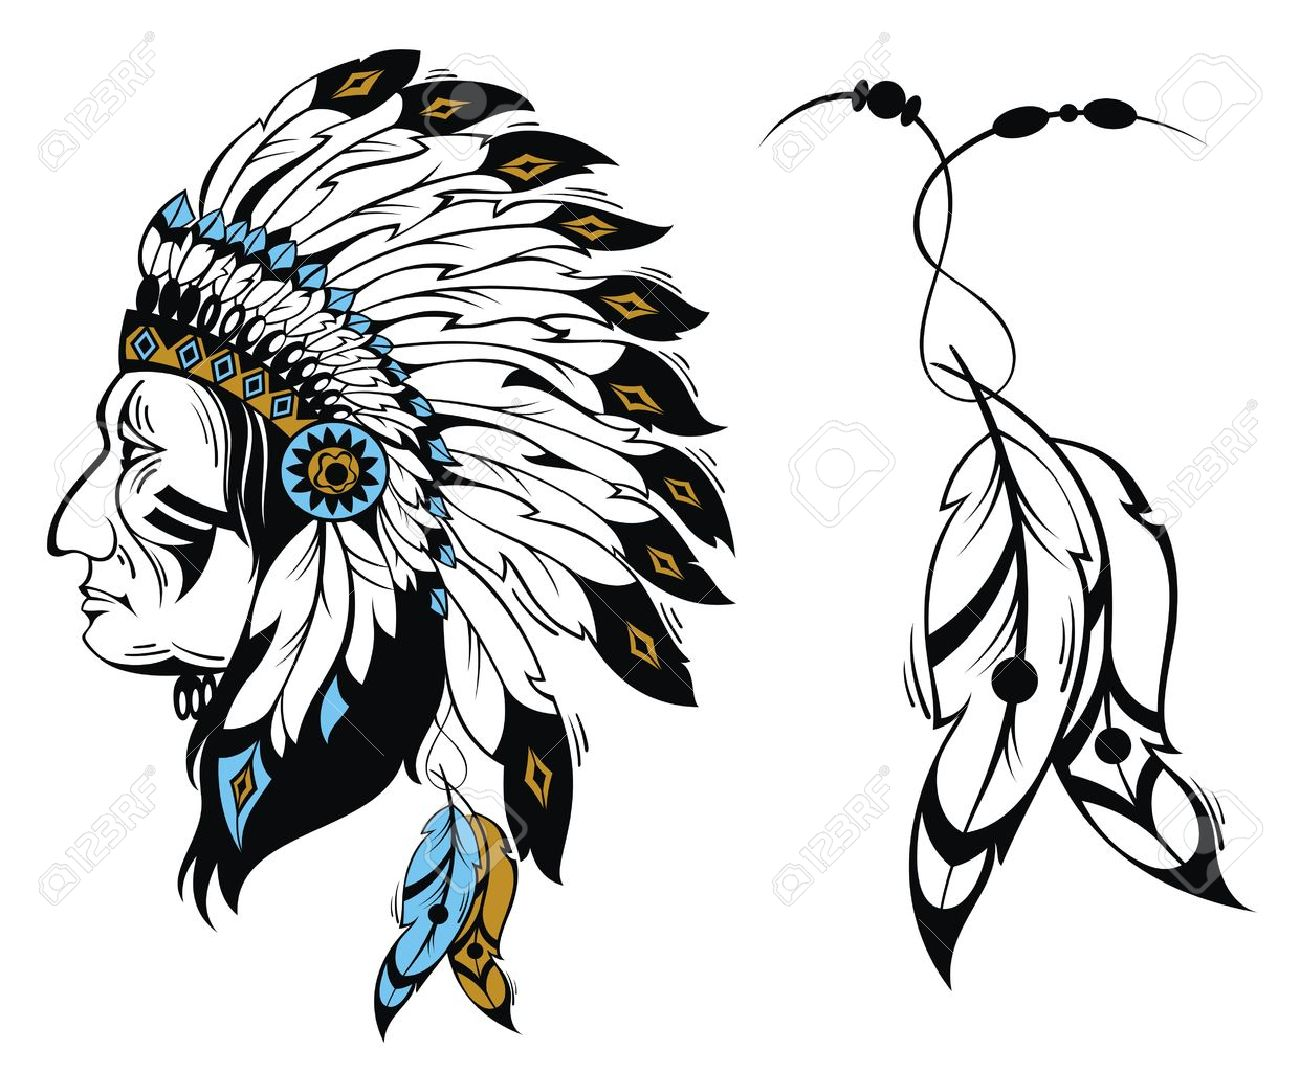 North American Indian chief.